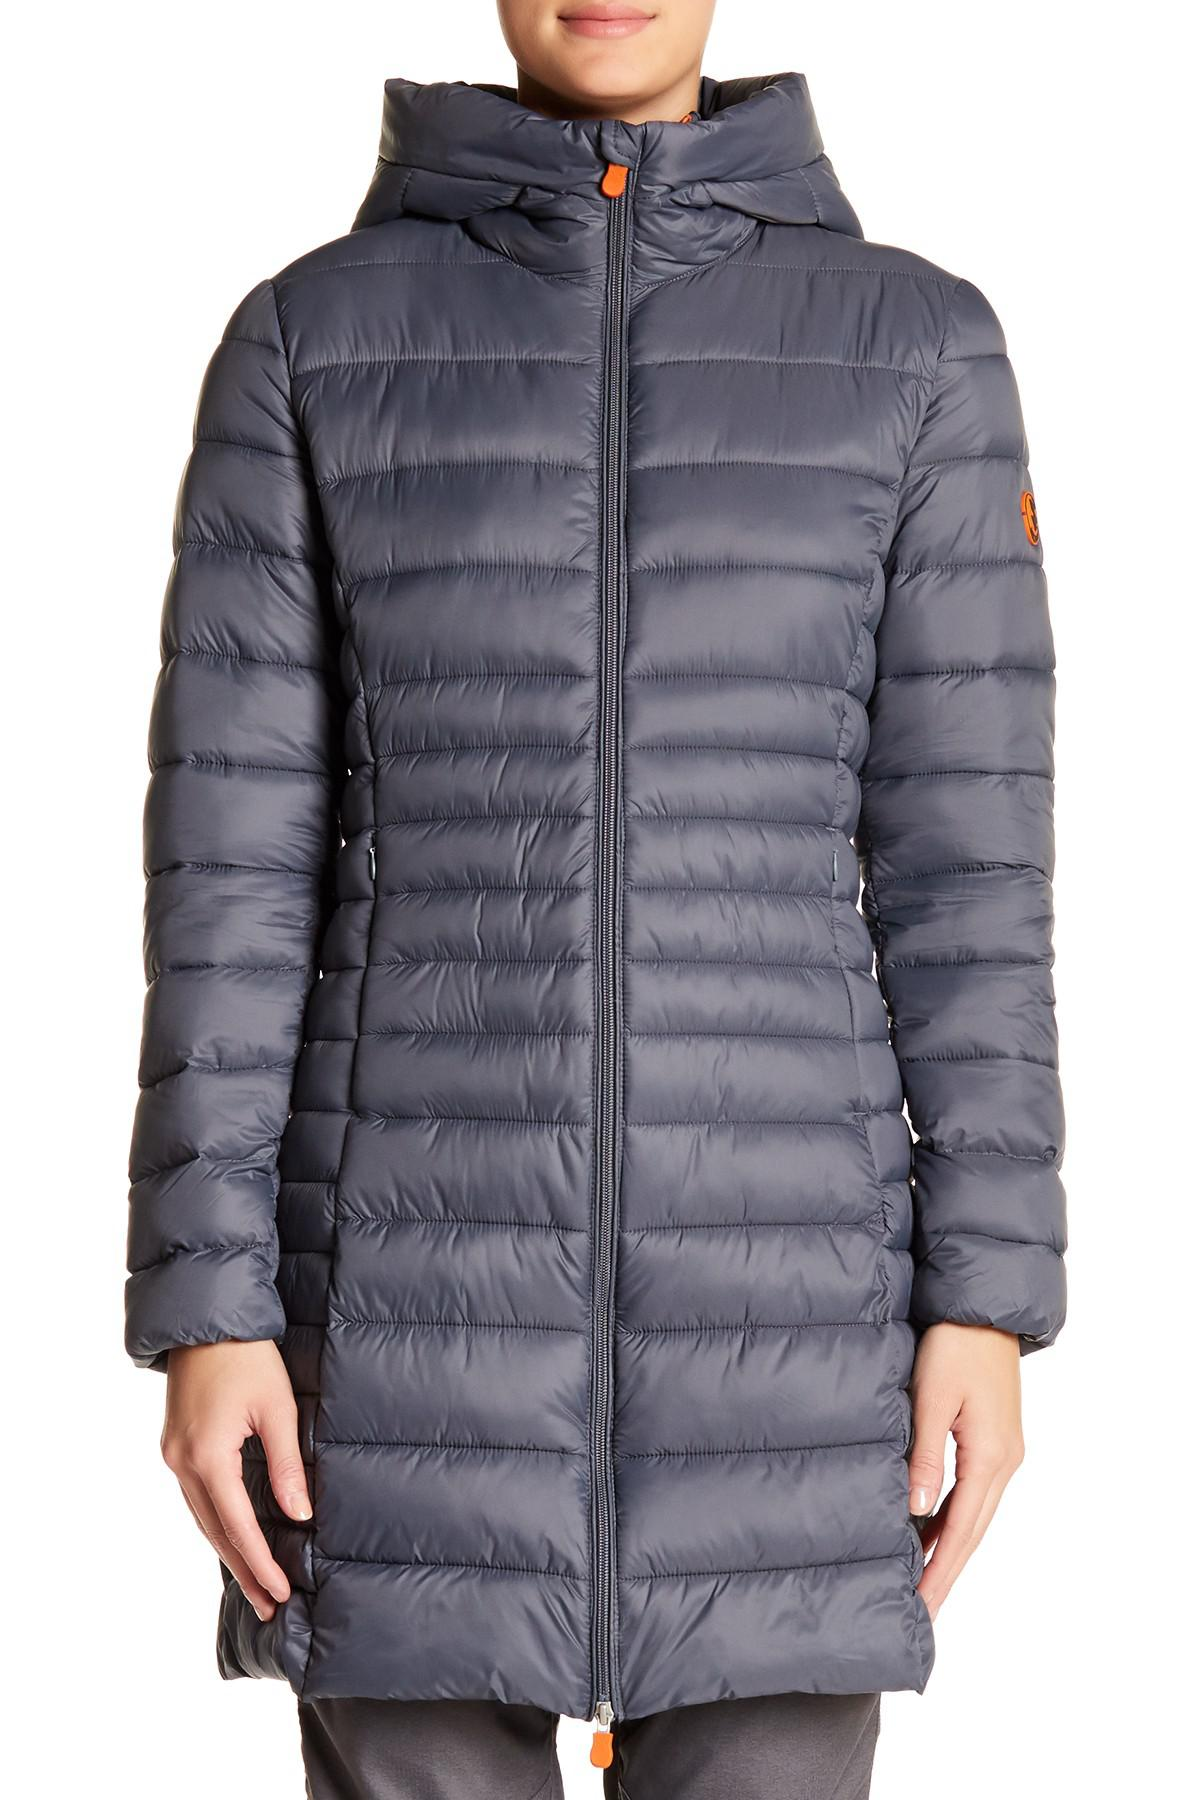 Lyst Save The Duck Long Hooded Basic Parka - Save The Duck